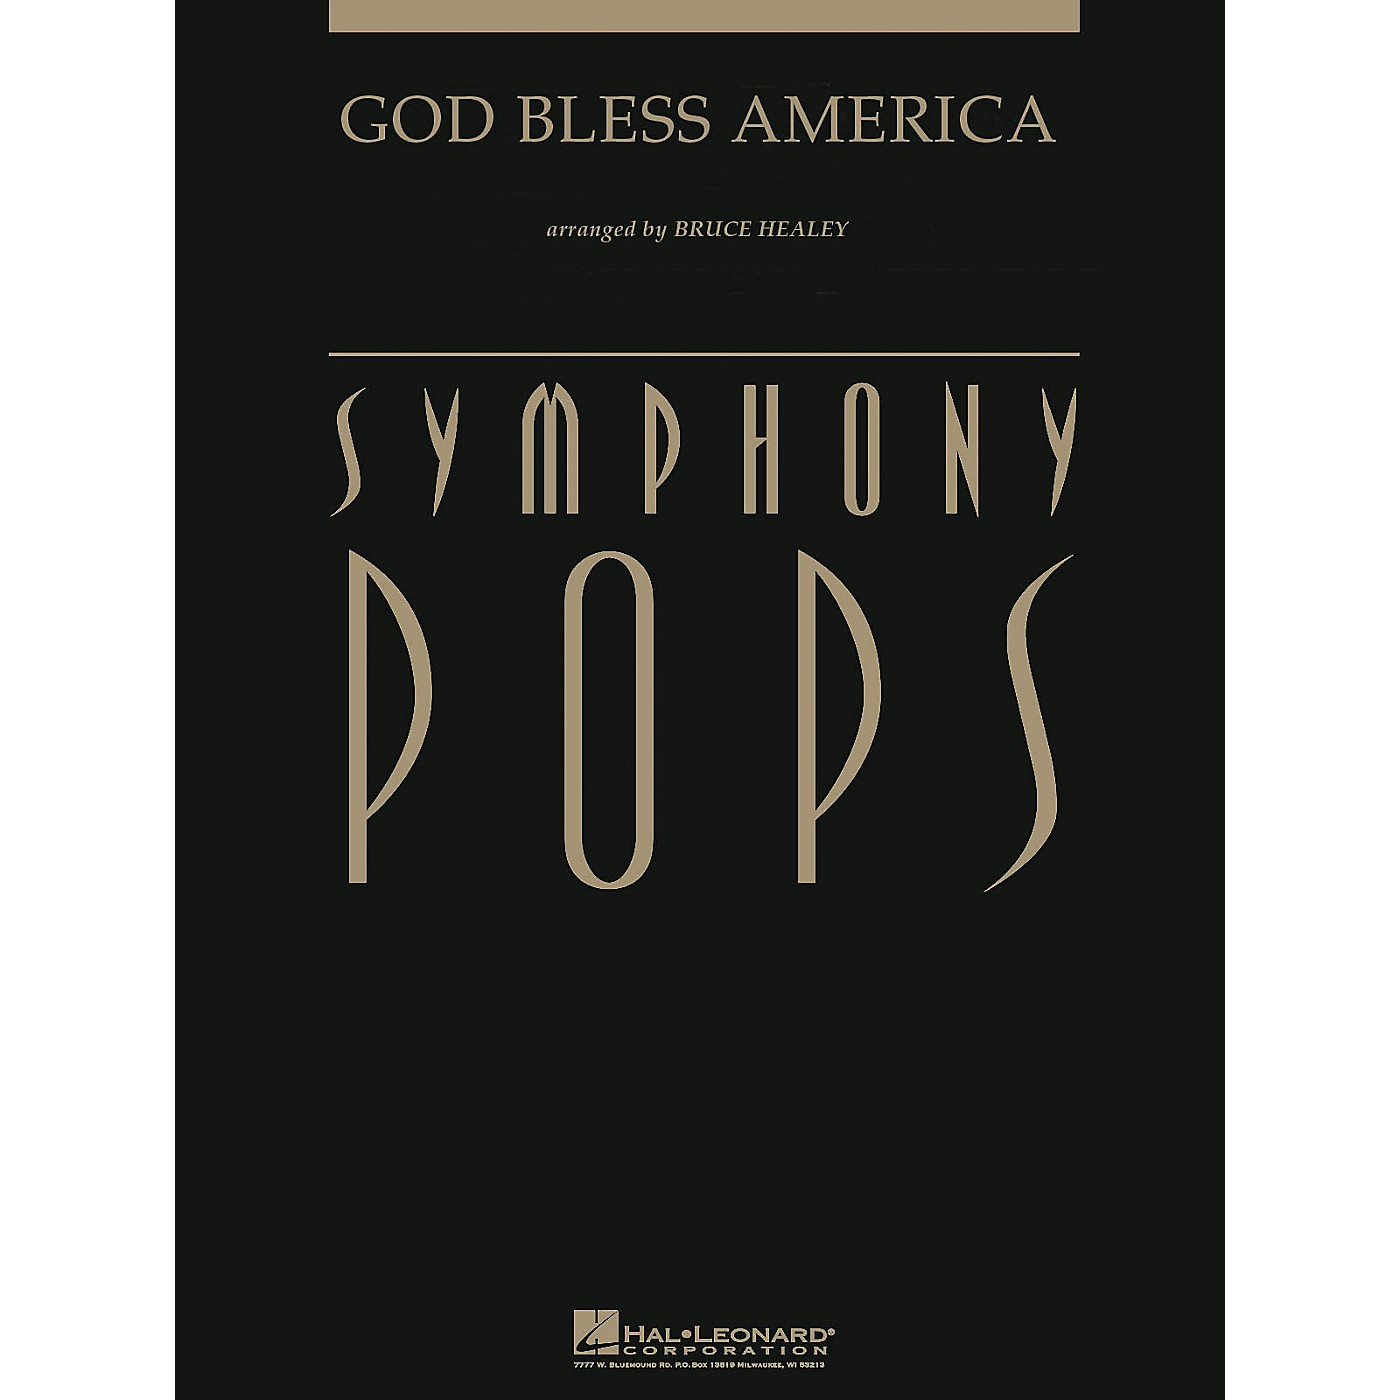 Hal Leonard God Bless America (with opt. Narrator Deluxe Score) Arranged by Bruce Healey thumbnail